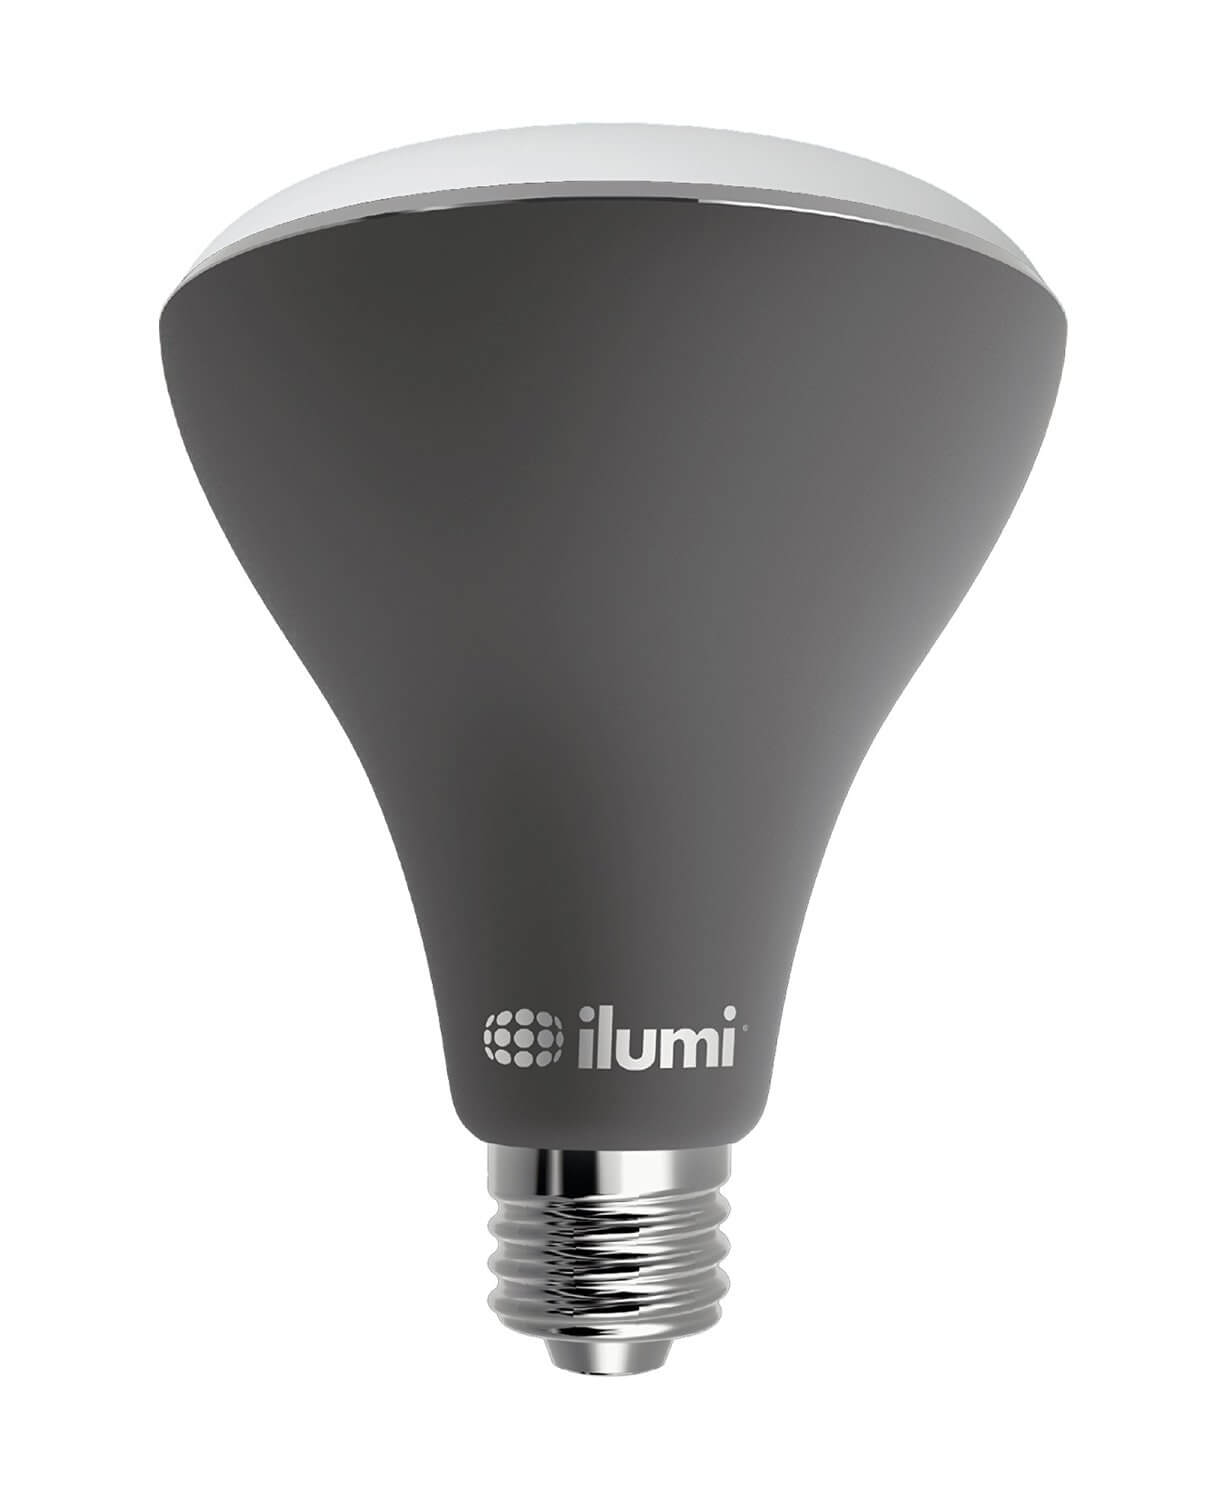 Ilumi smart multicolored bulb